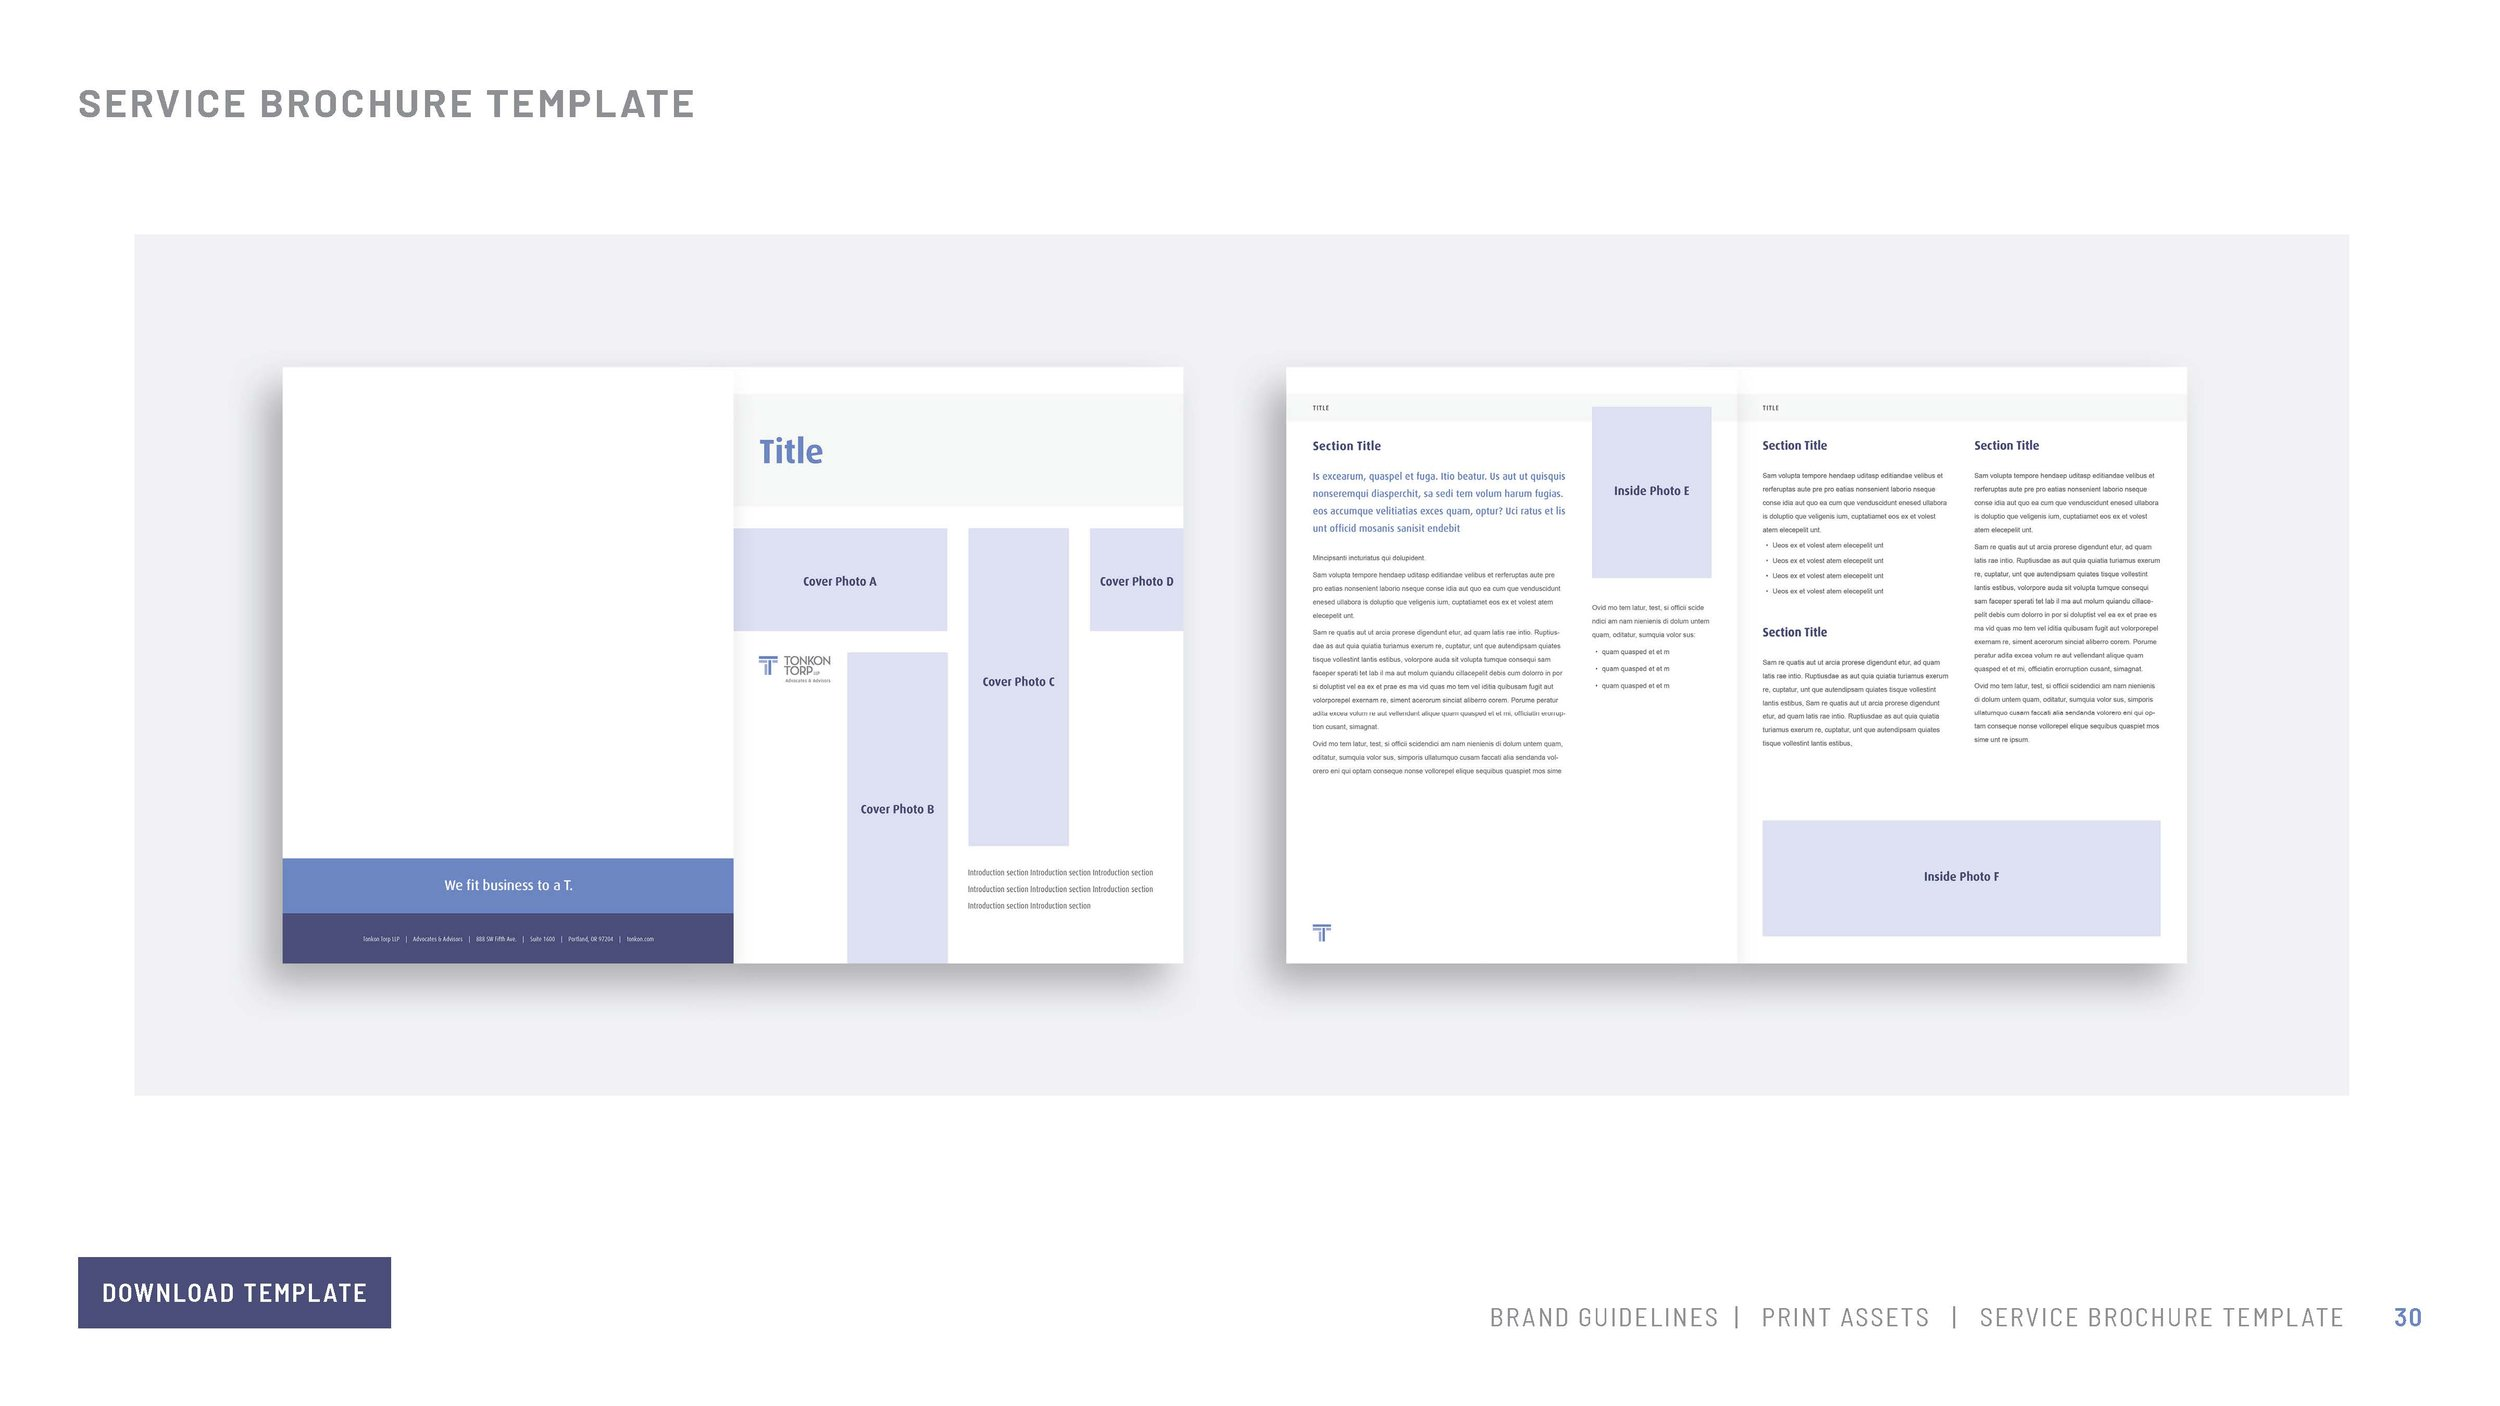 TTL_Brand Guidelines_Rd2_Page_30.jpg